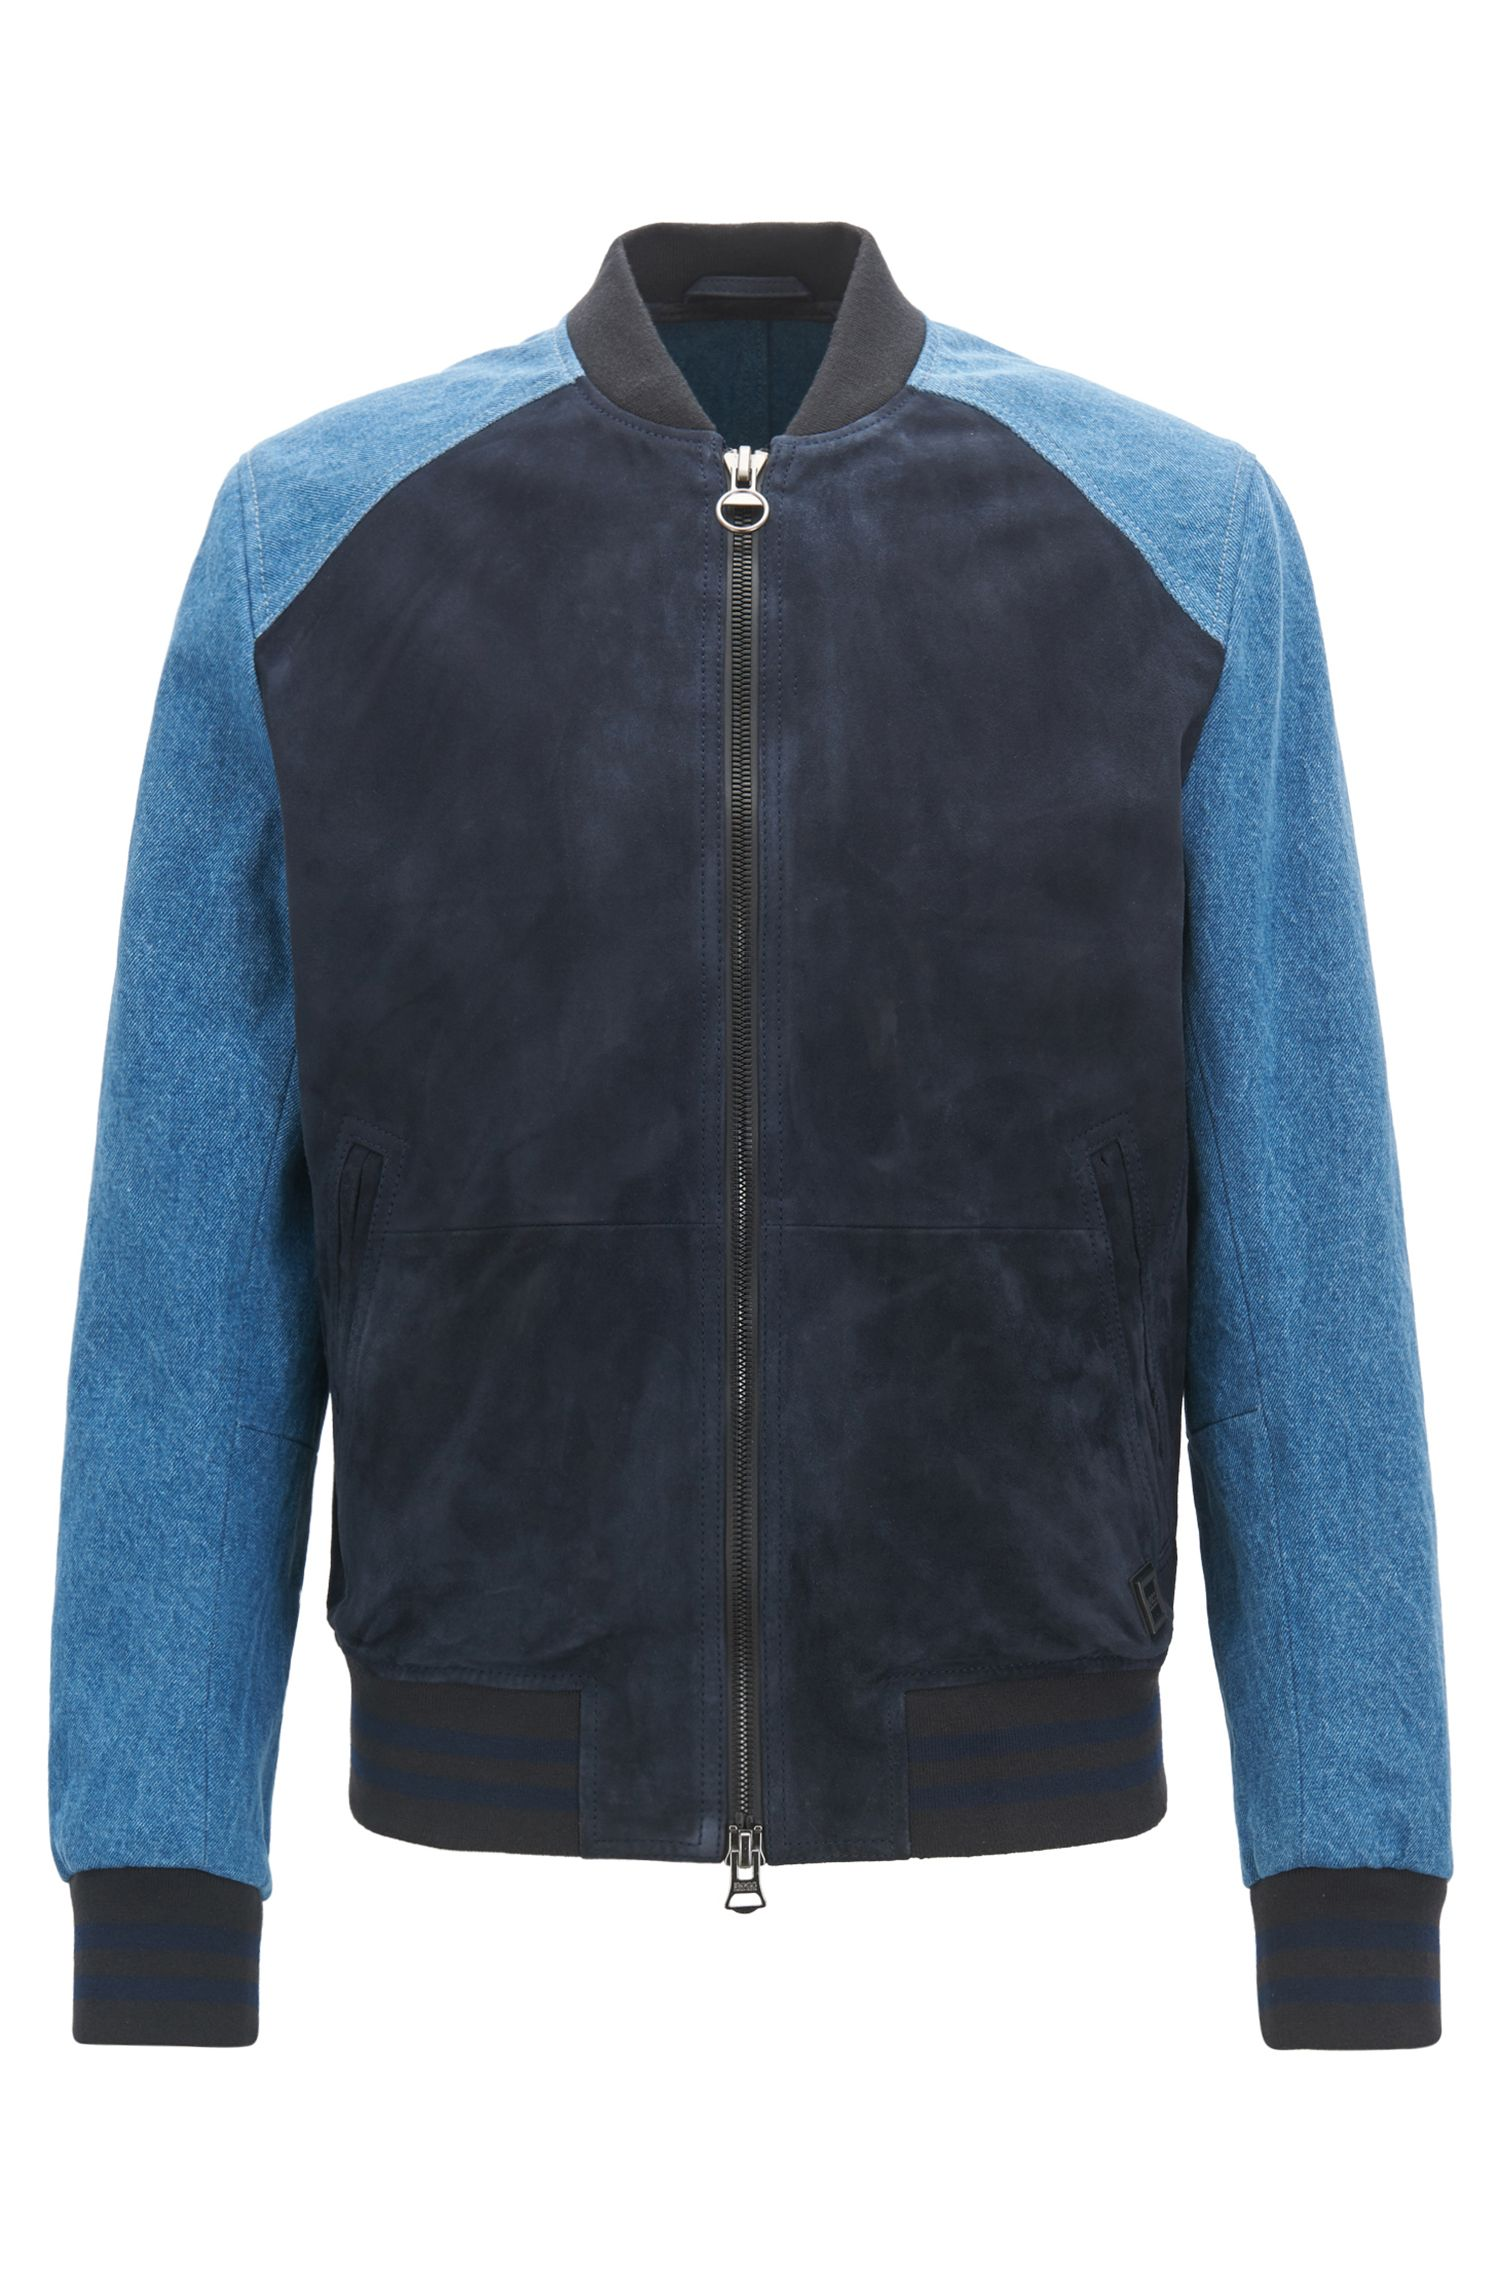 Slim-fit varsity jacket in suede and denim